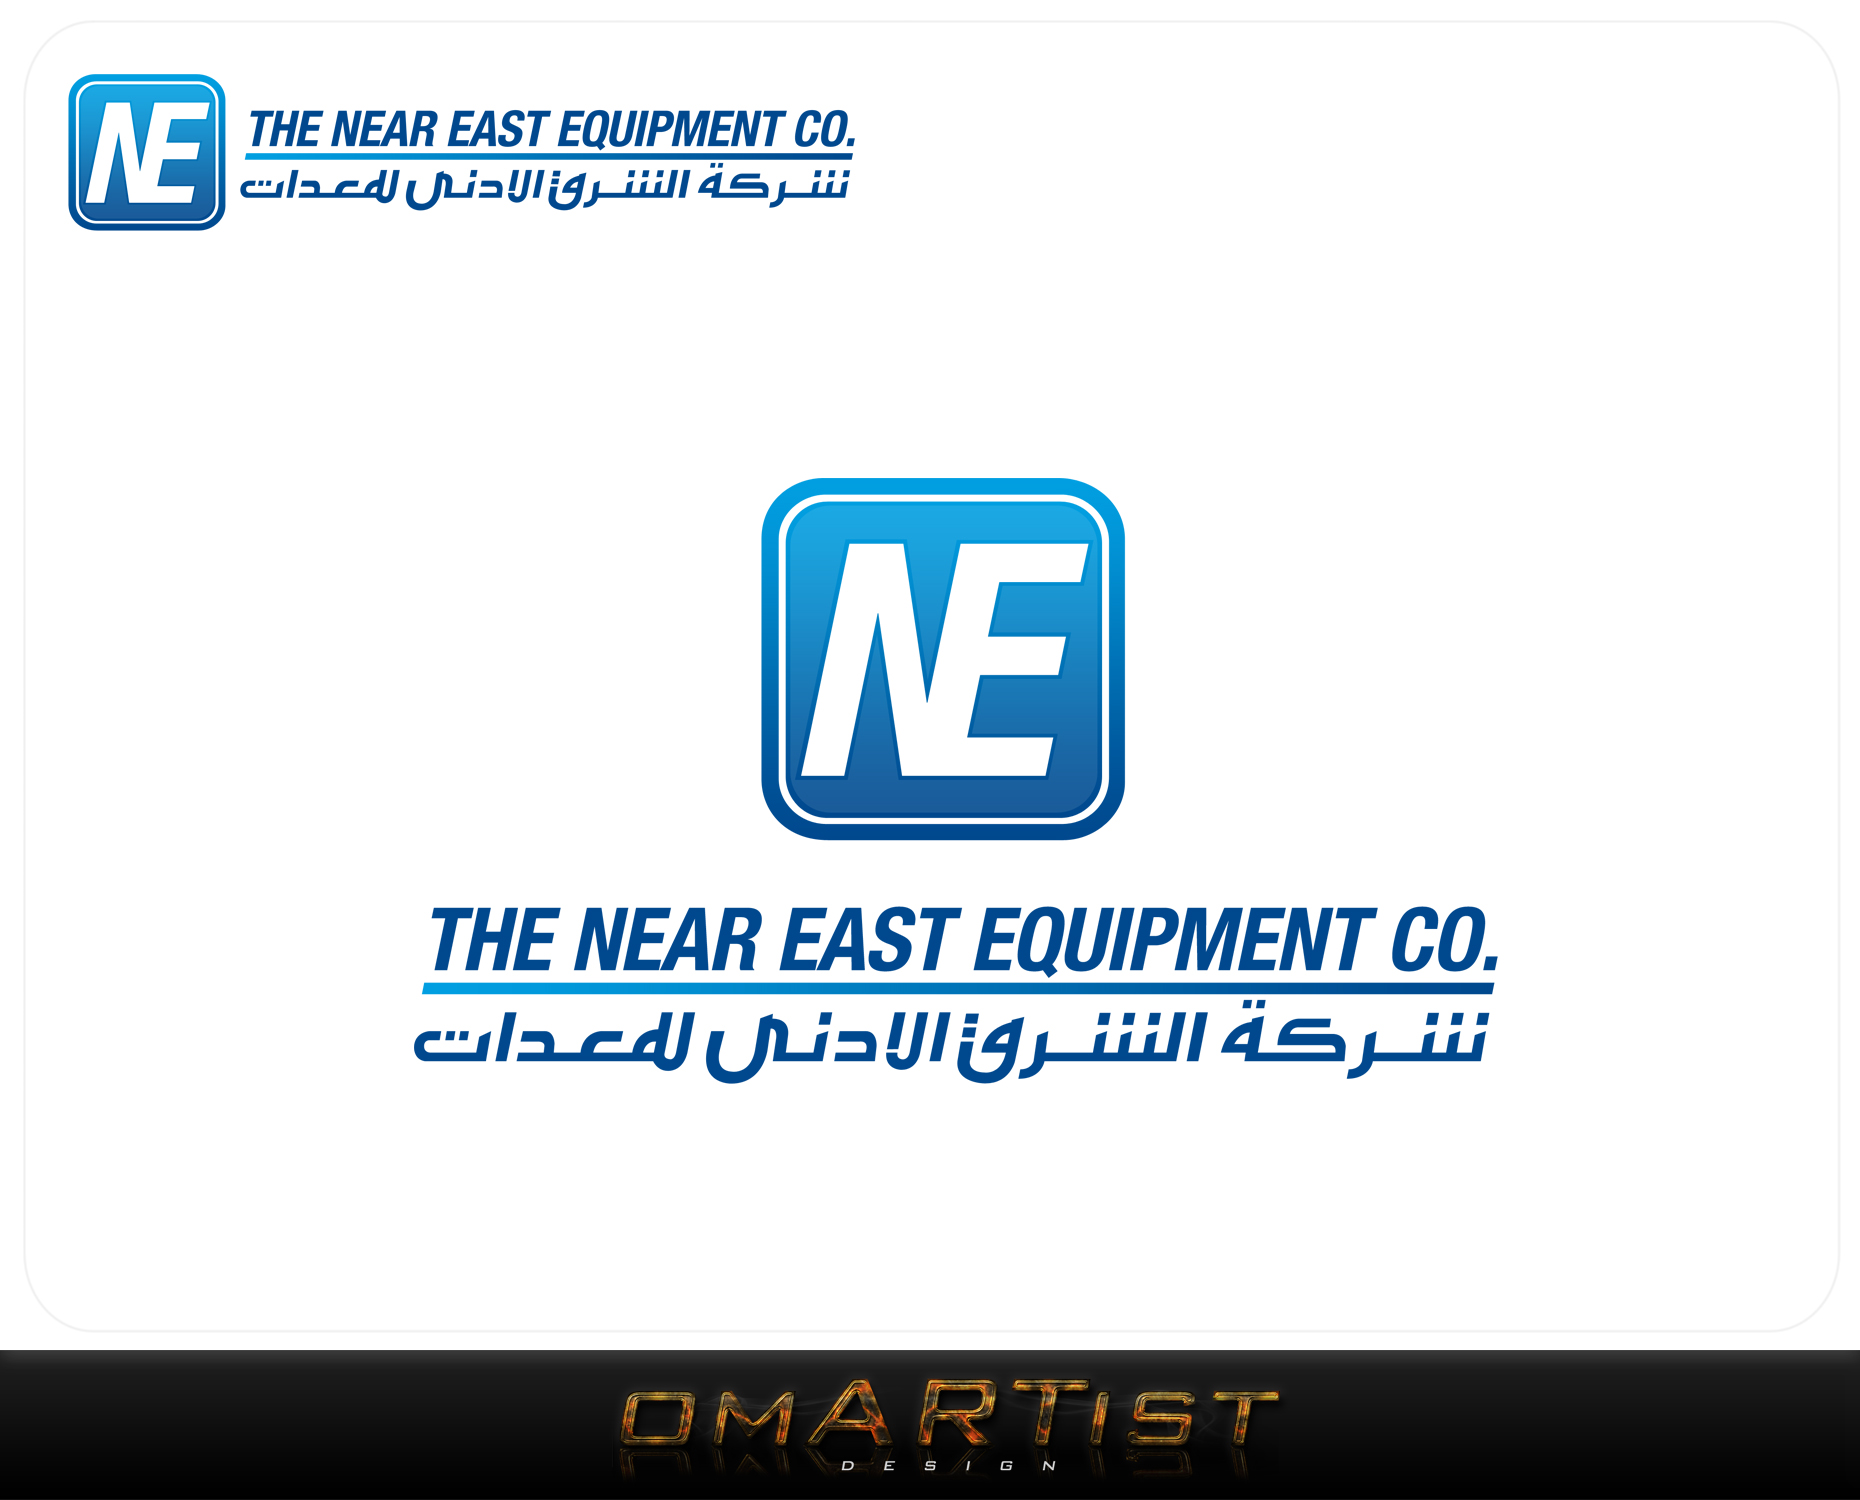 Logo Design by omARTist - Entry No. 113 in the Logo Design Contest Imaginative Logo Design for The Near East Equipment Co..